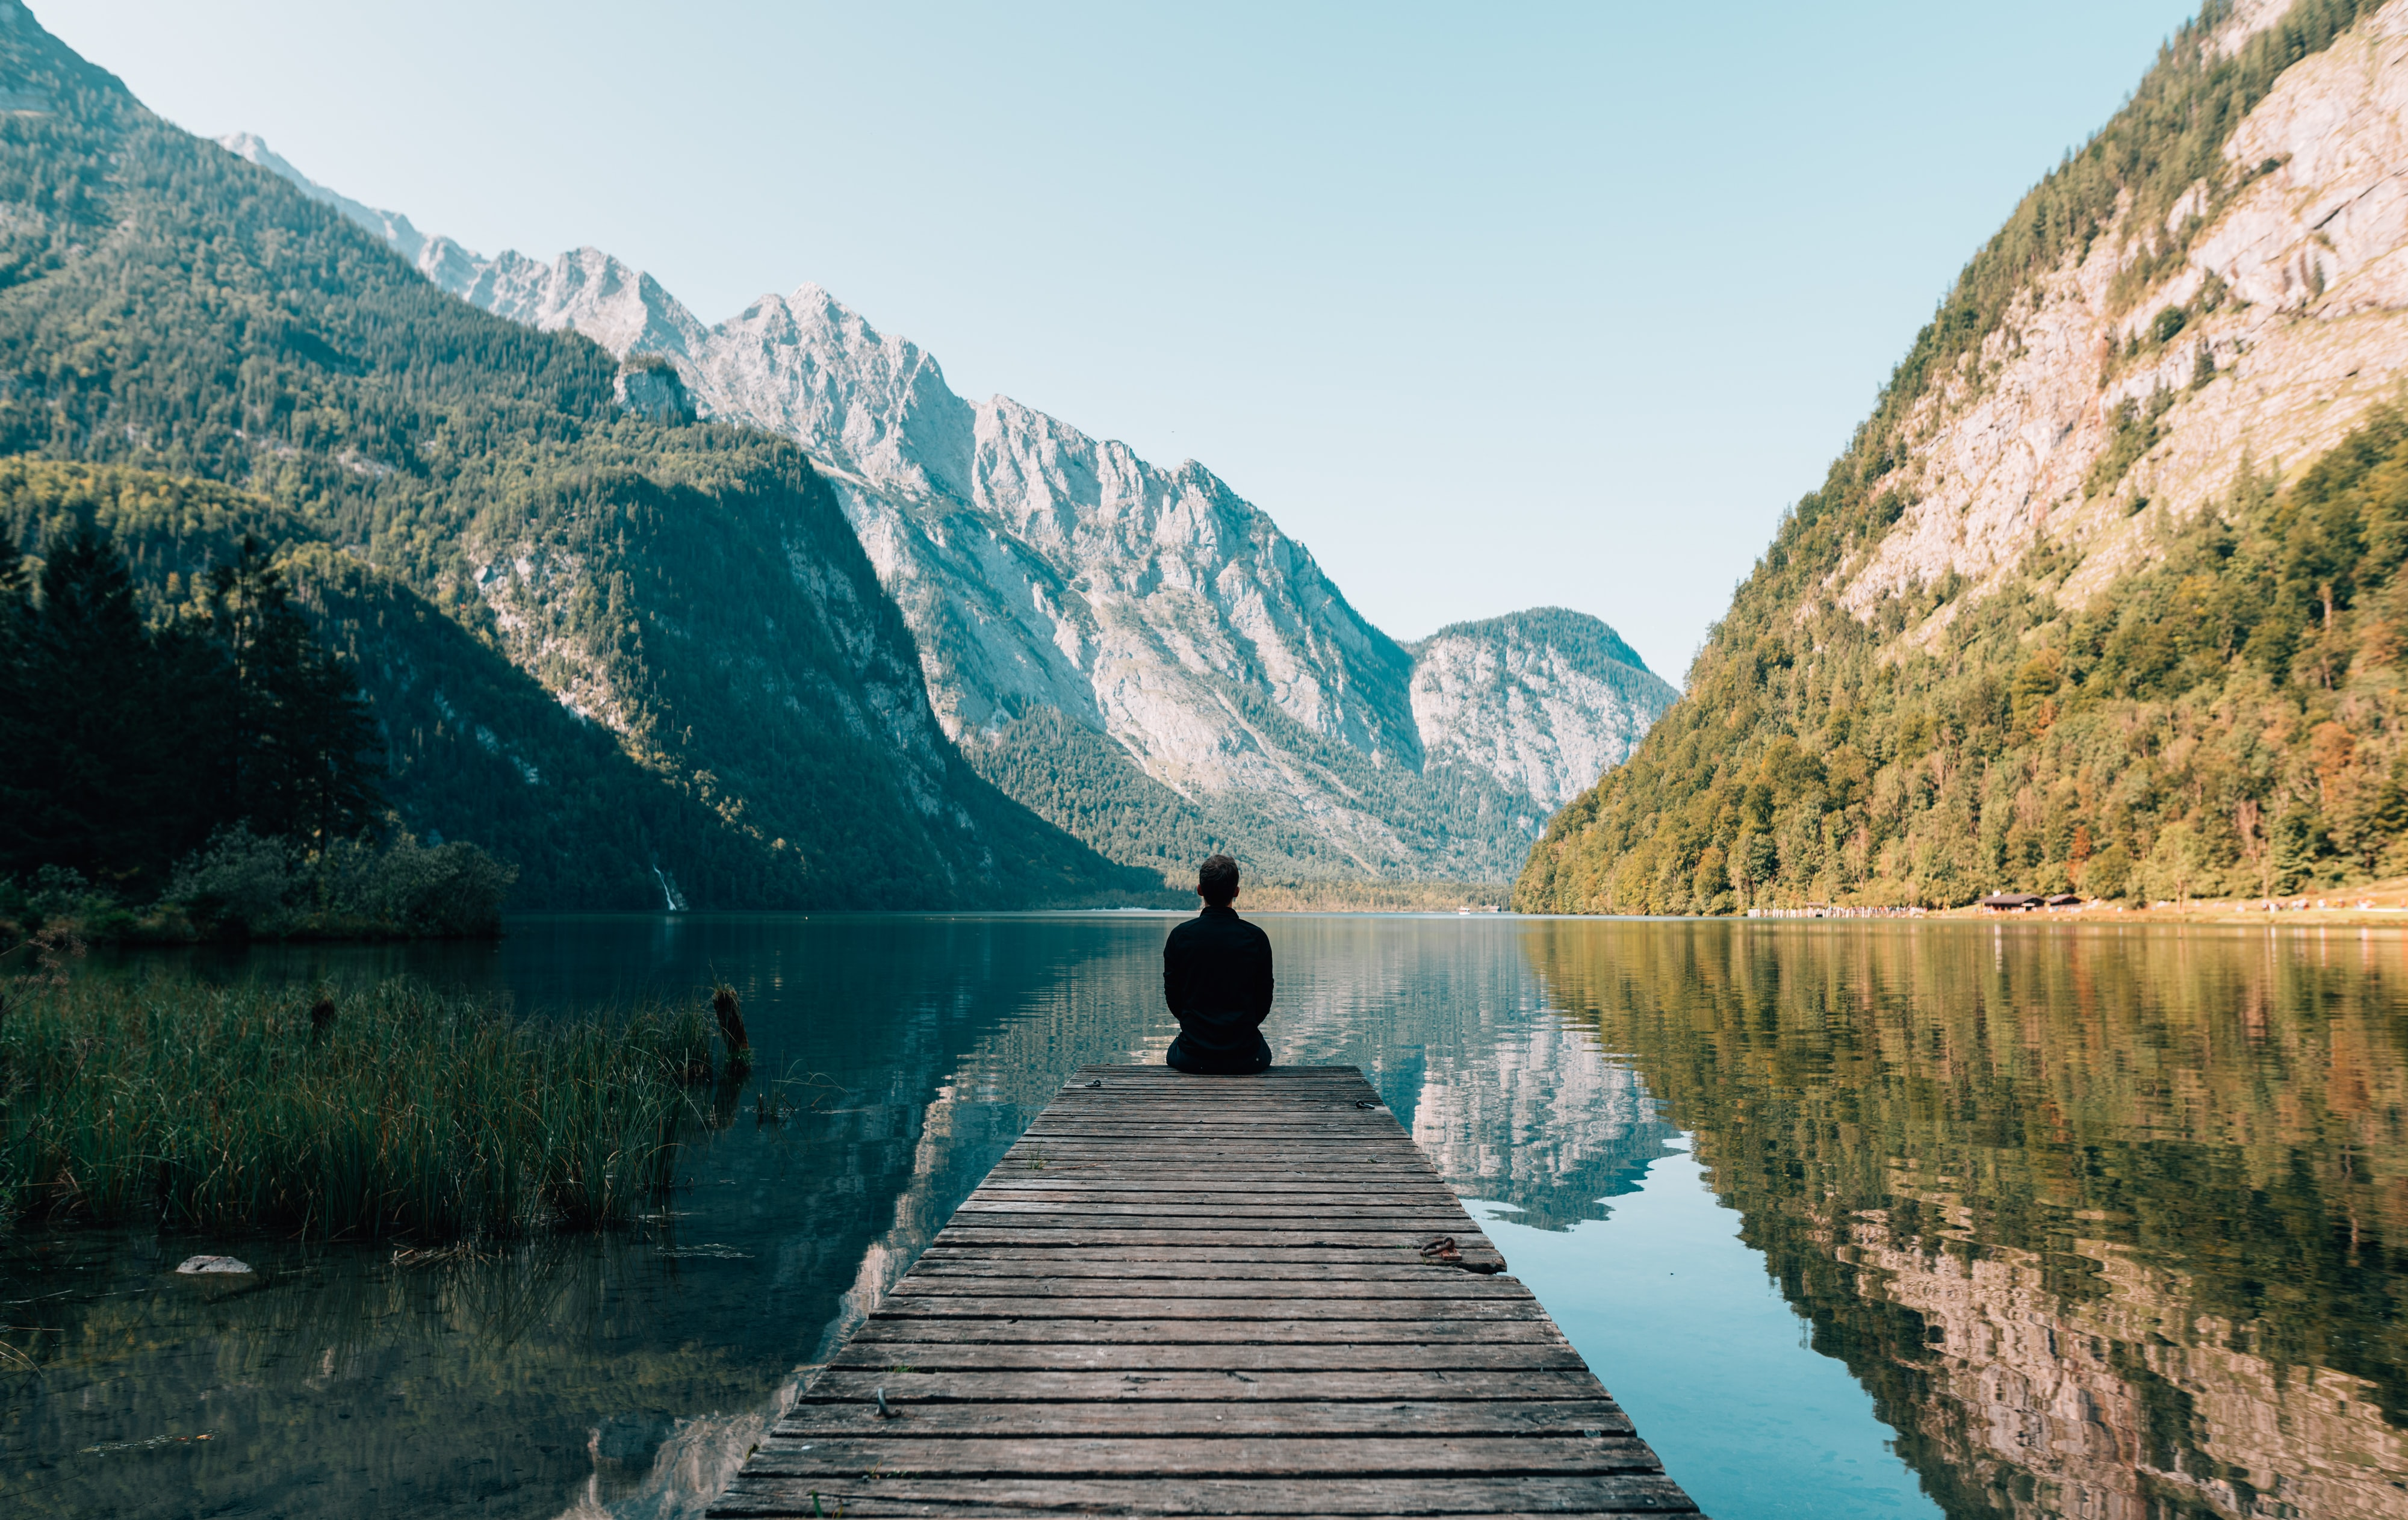 Man sitting on dock with his back to camera, watching still waters bordered by mountains; image by Simon Migaj, via Unsplash.com.